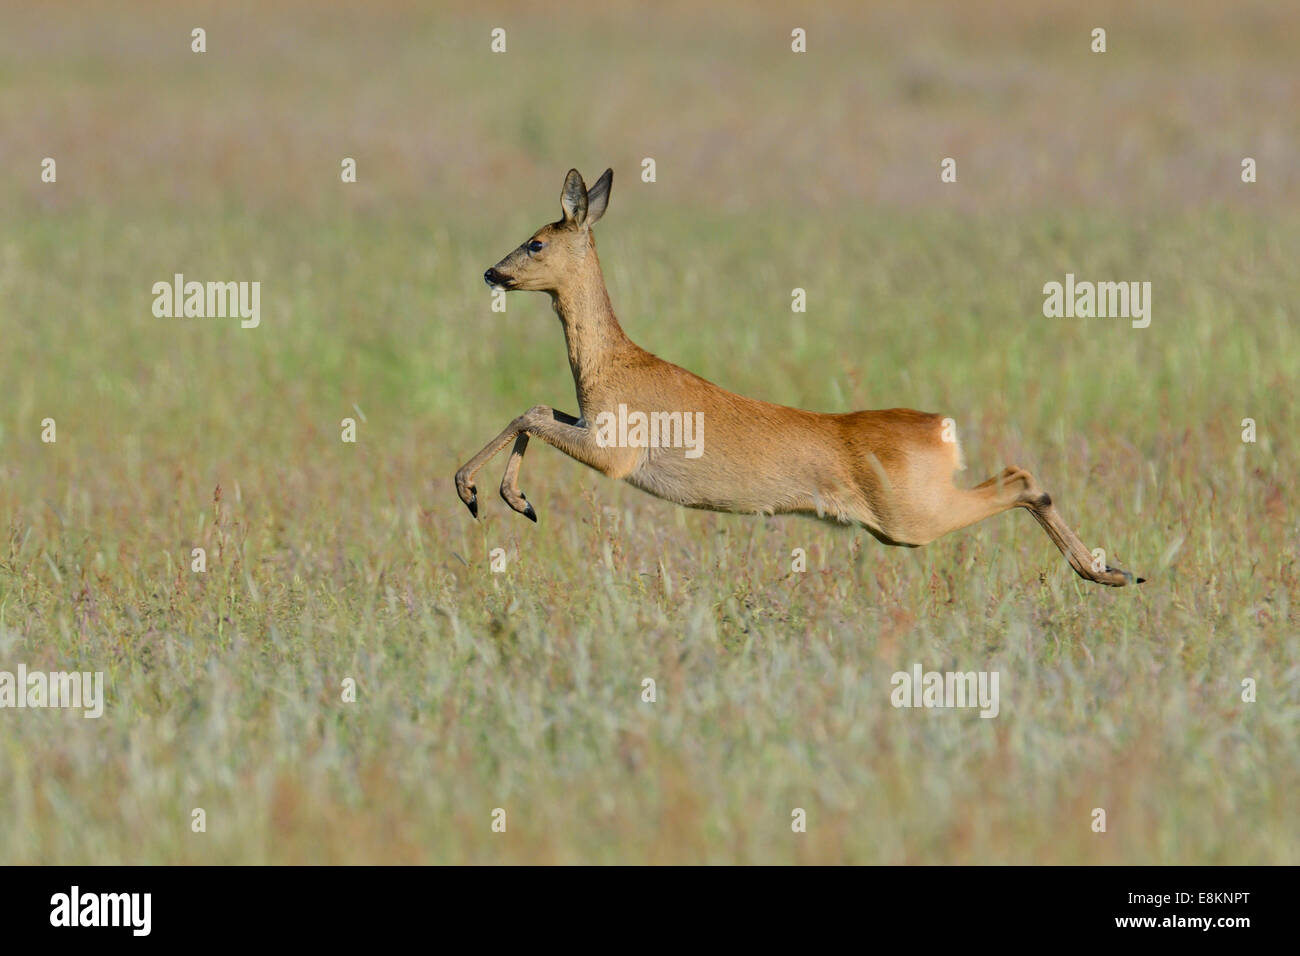 Roe Deer (Capreolus capreolus) leaping across a meadow, North Rhine-Westphalia, Germany - Stock Image